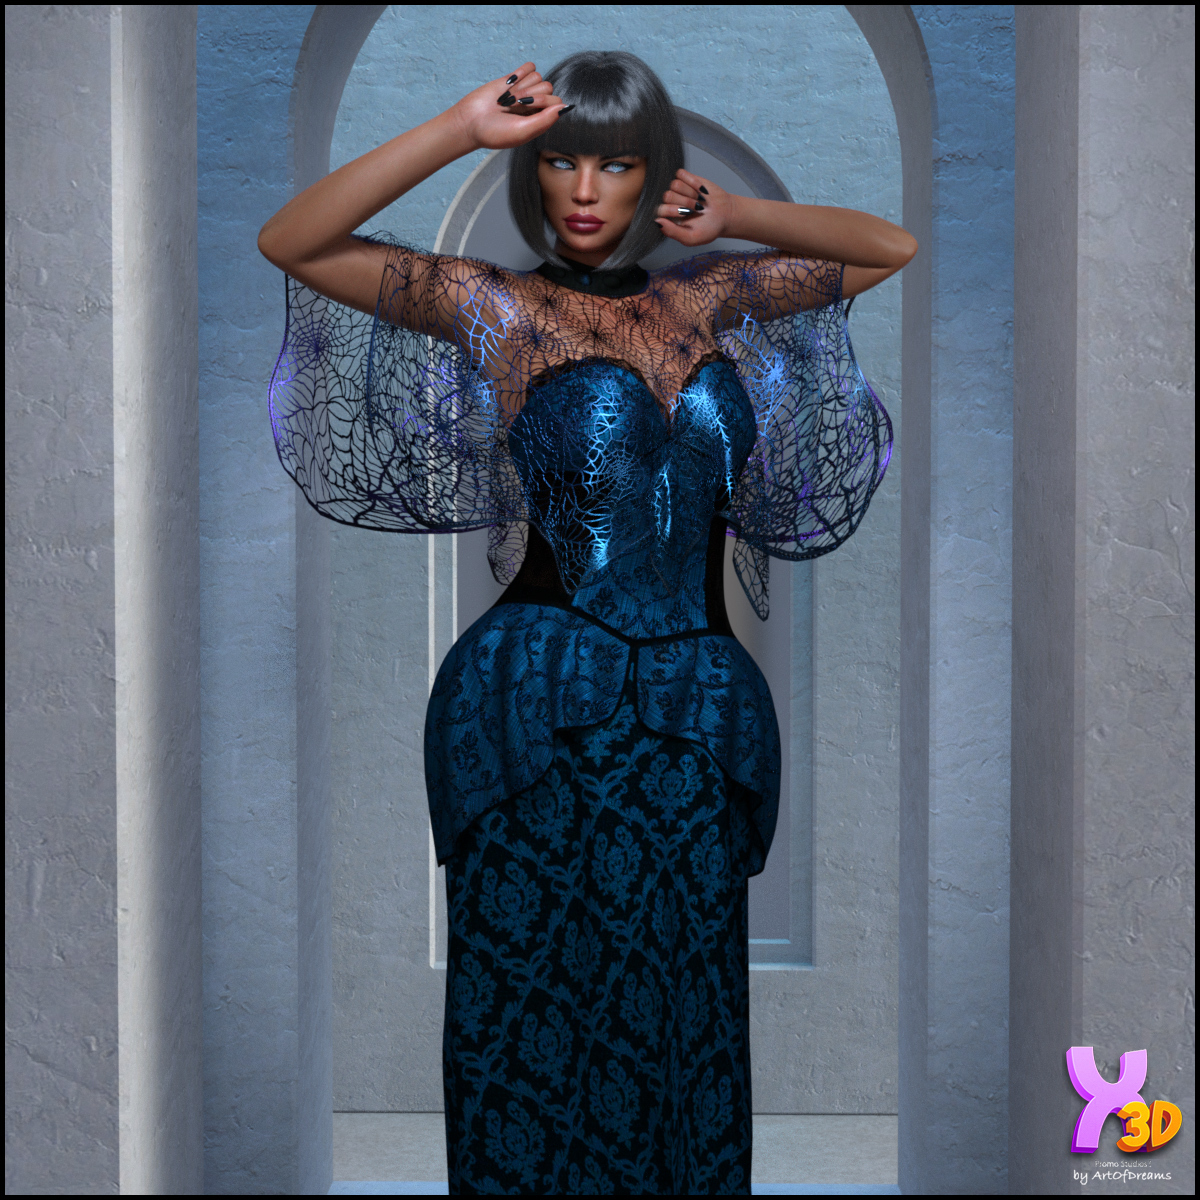 dforce Bewitching Gown & Capes G8F by Kaleya3d by ArtOfDreams